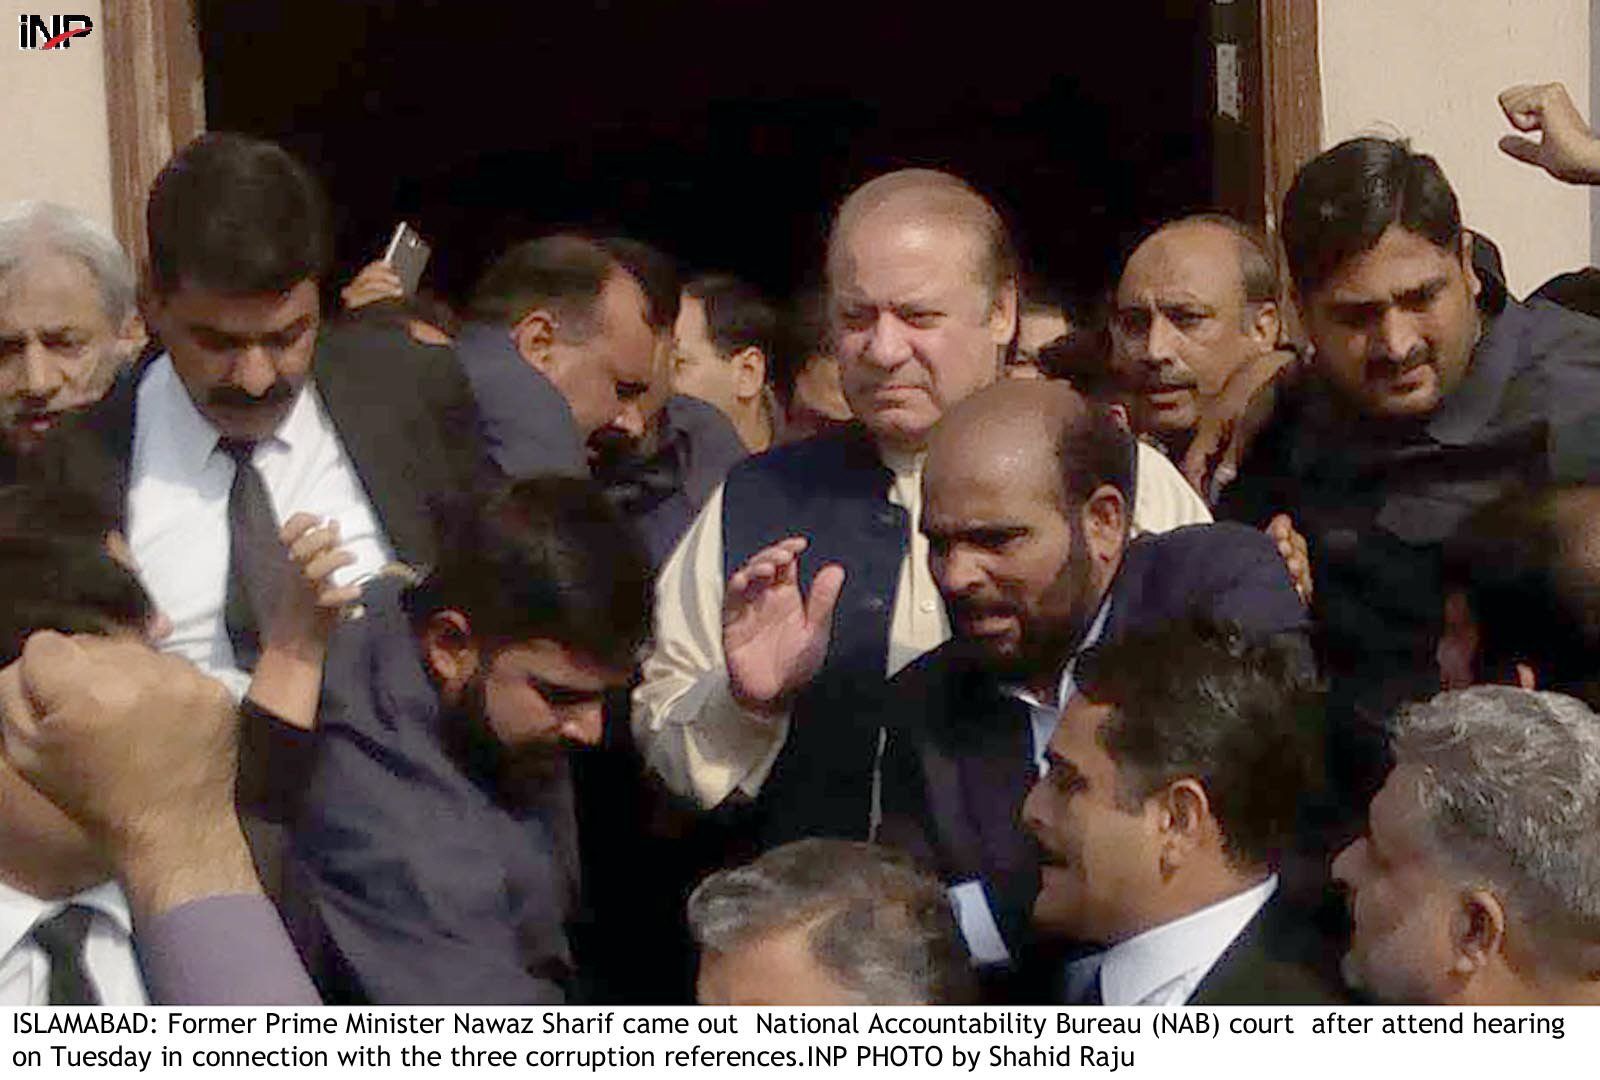 Nawaz accuses courts of 'double standard' as corruption trial begins